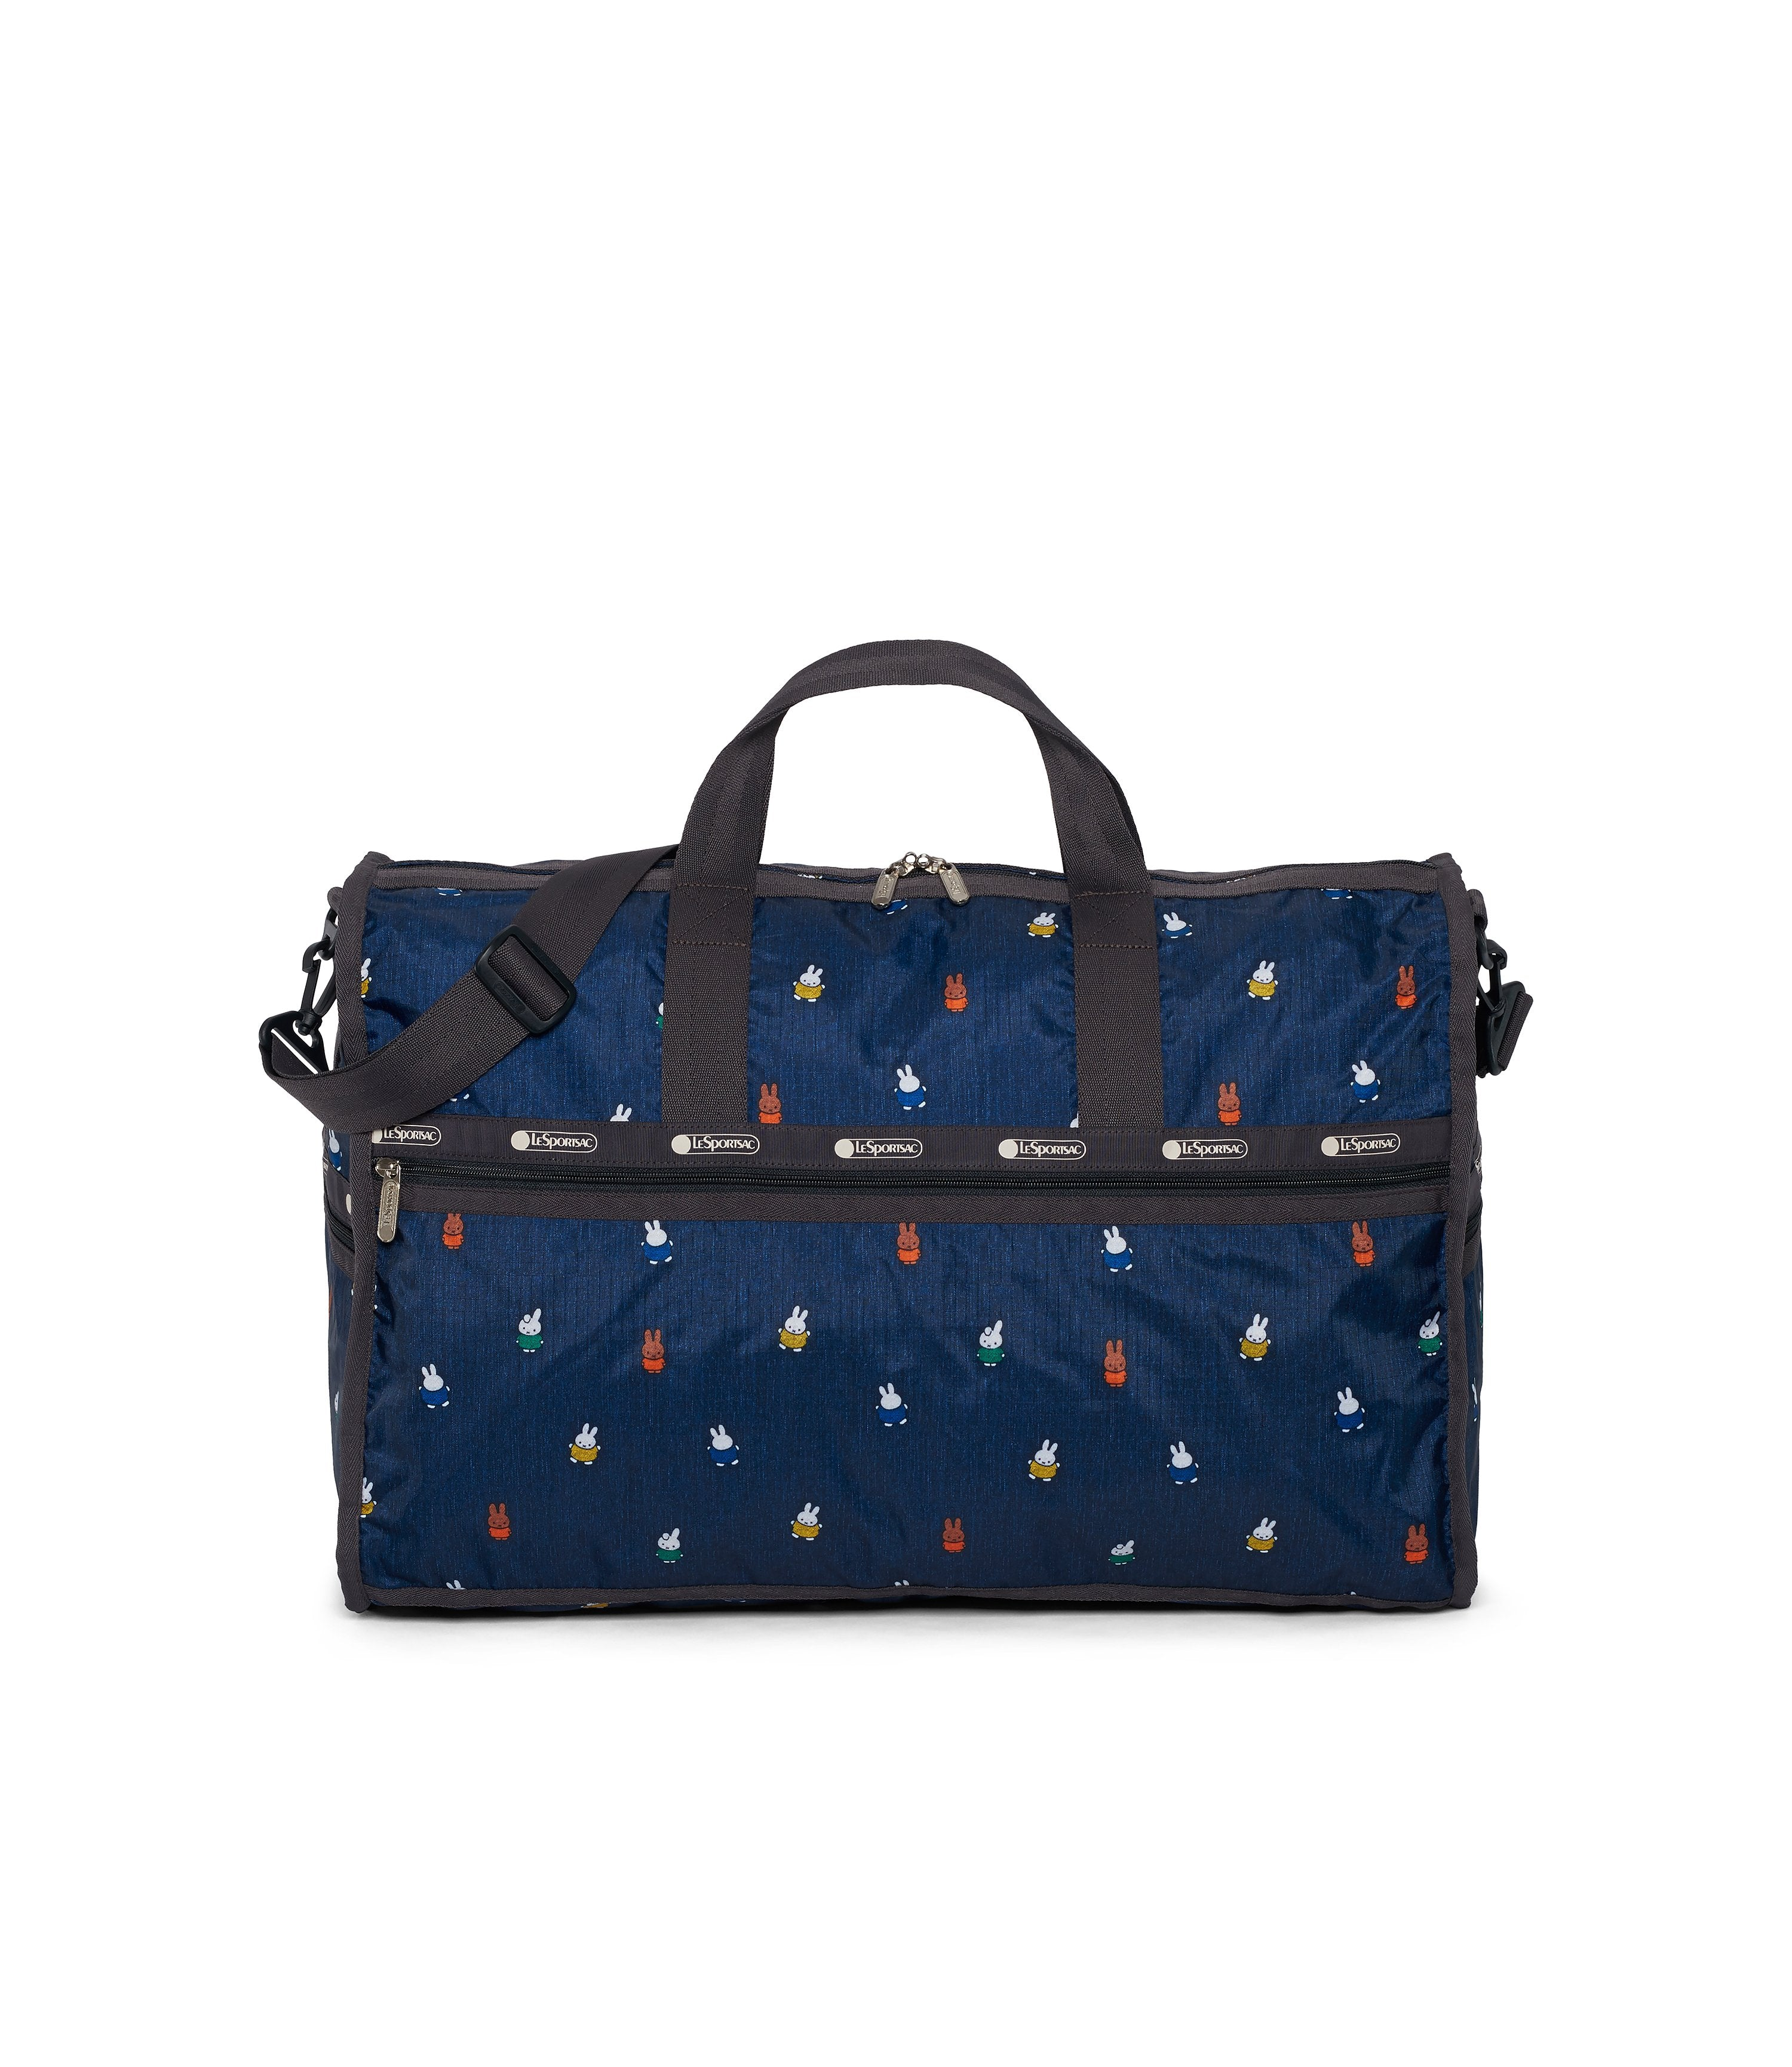 Dick Bruna - LeSportsac Large Weekender - Duffle - Miffy and Friends - Navy -  Front View